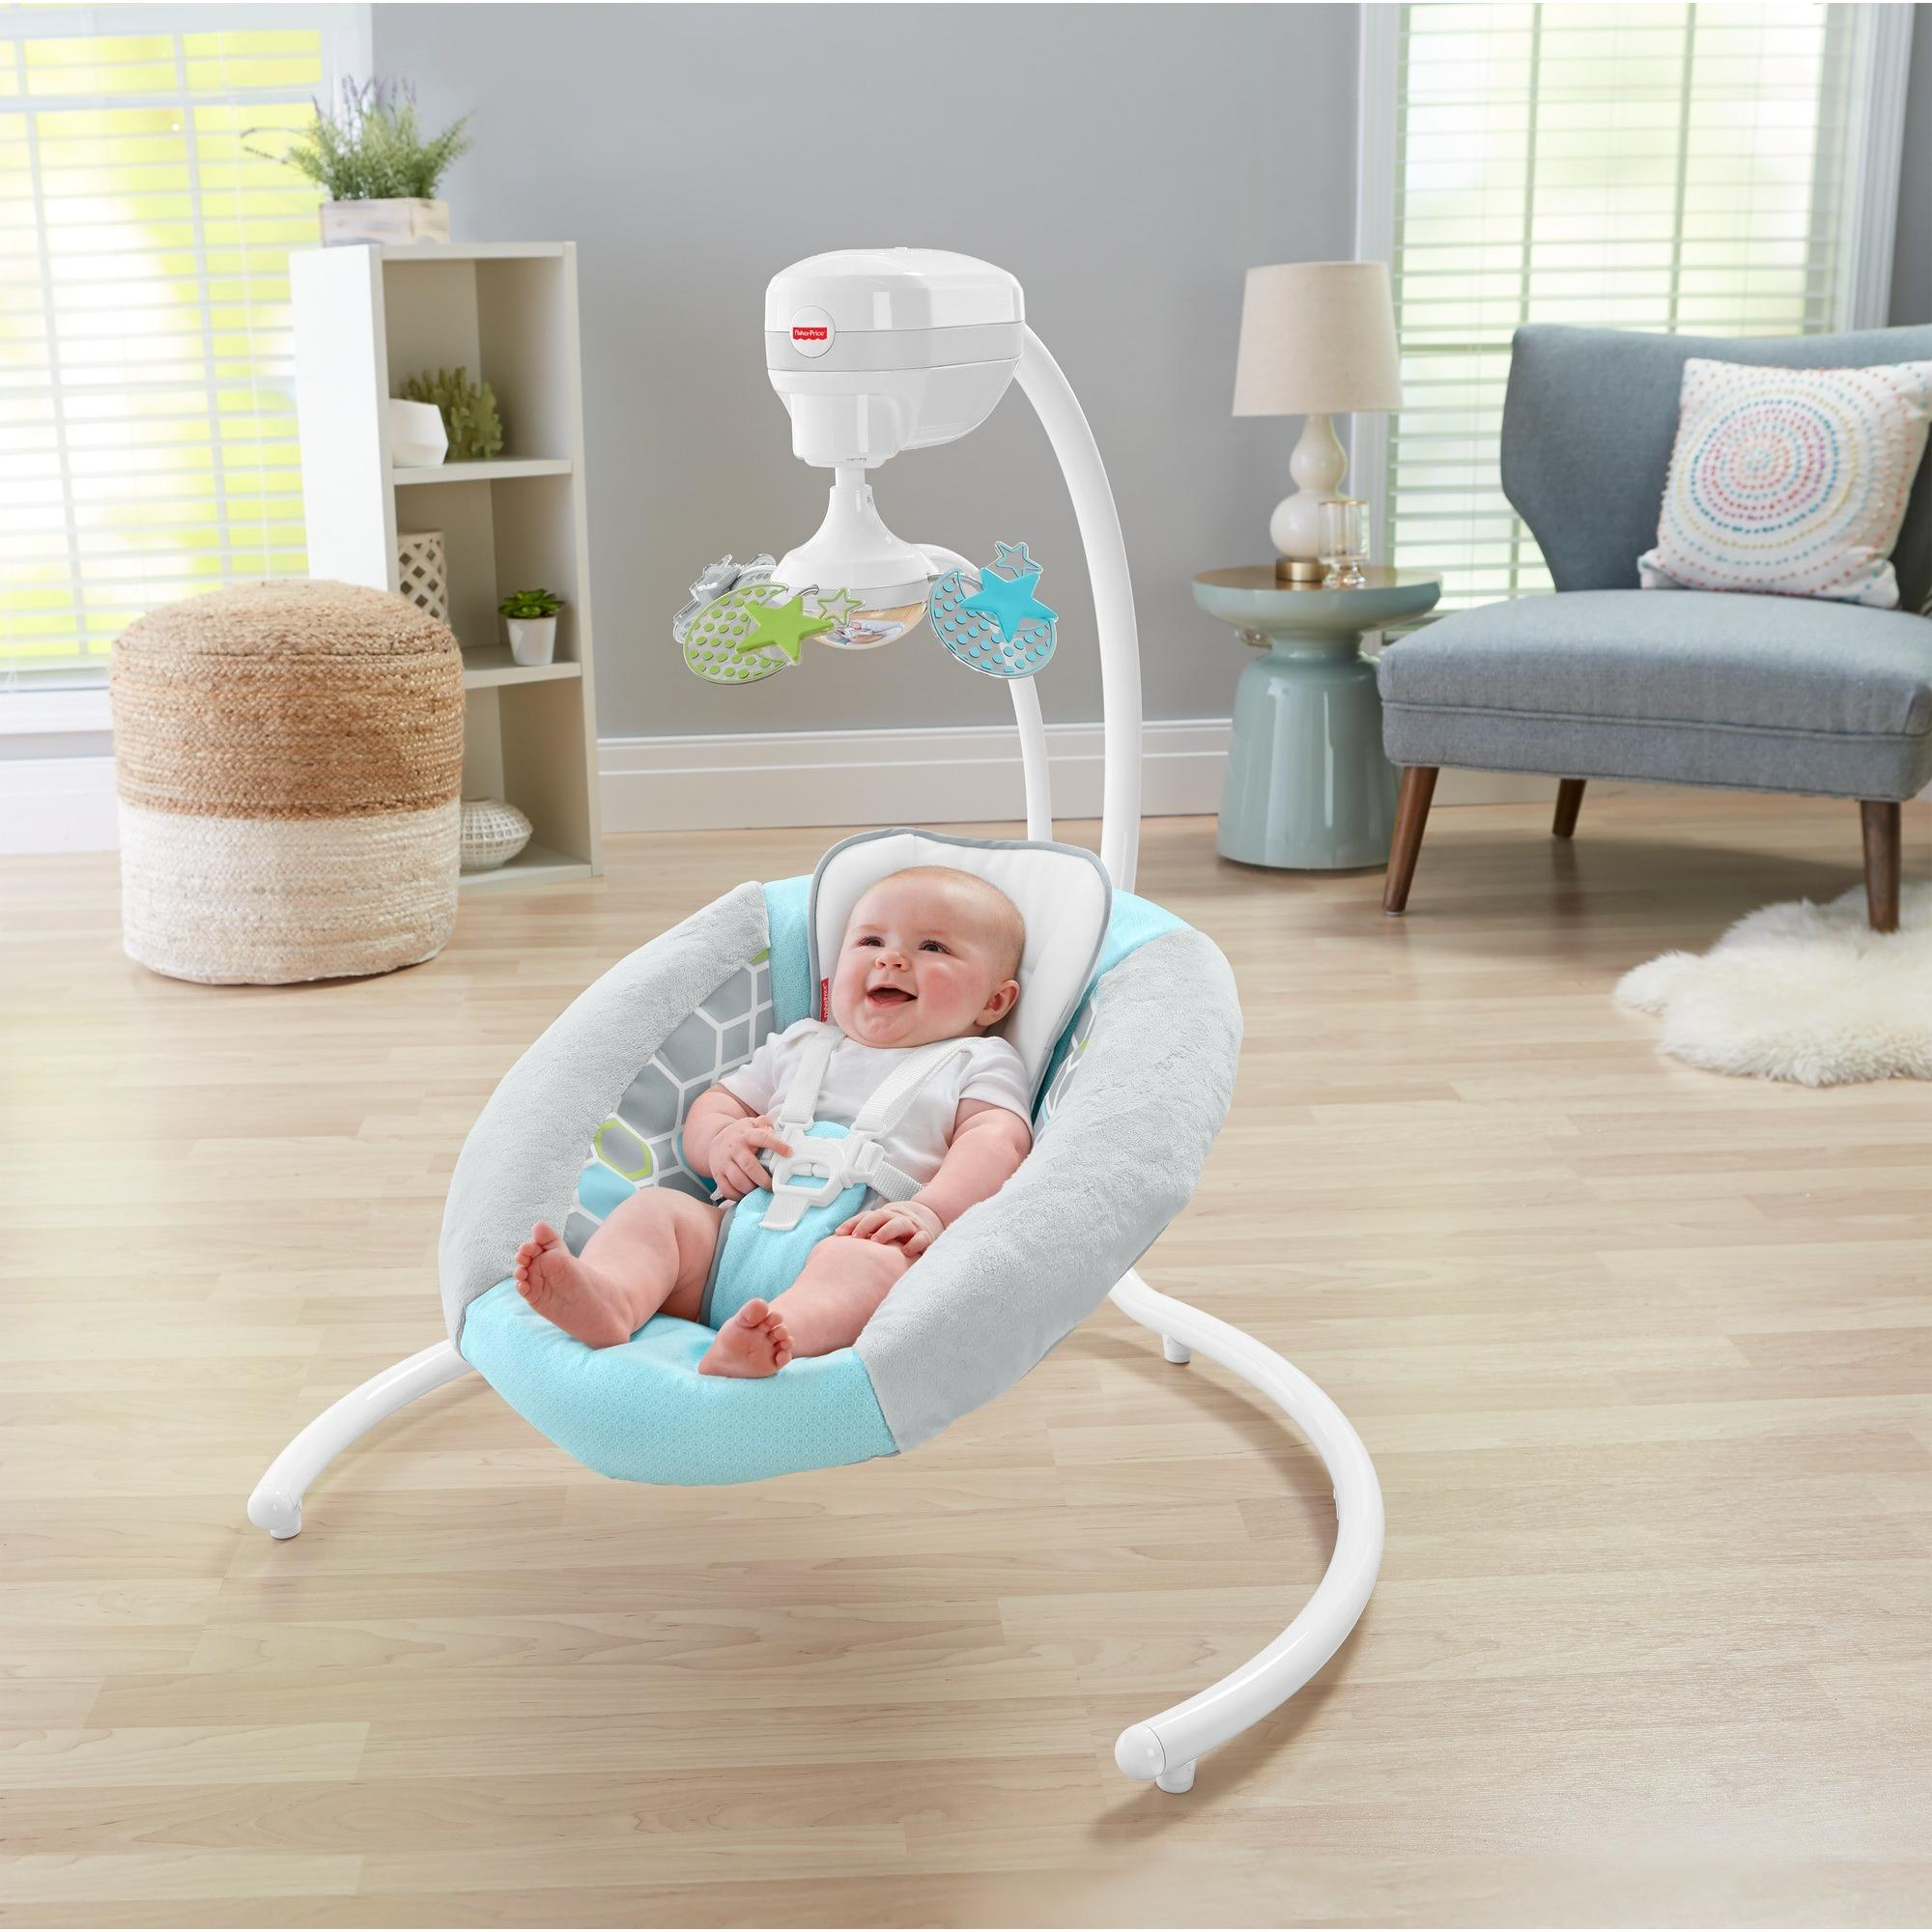 revolving chair for baby adjustable chairs without wheels fisher price revolve swing walmart com